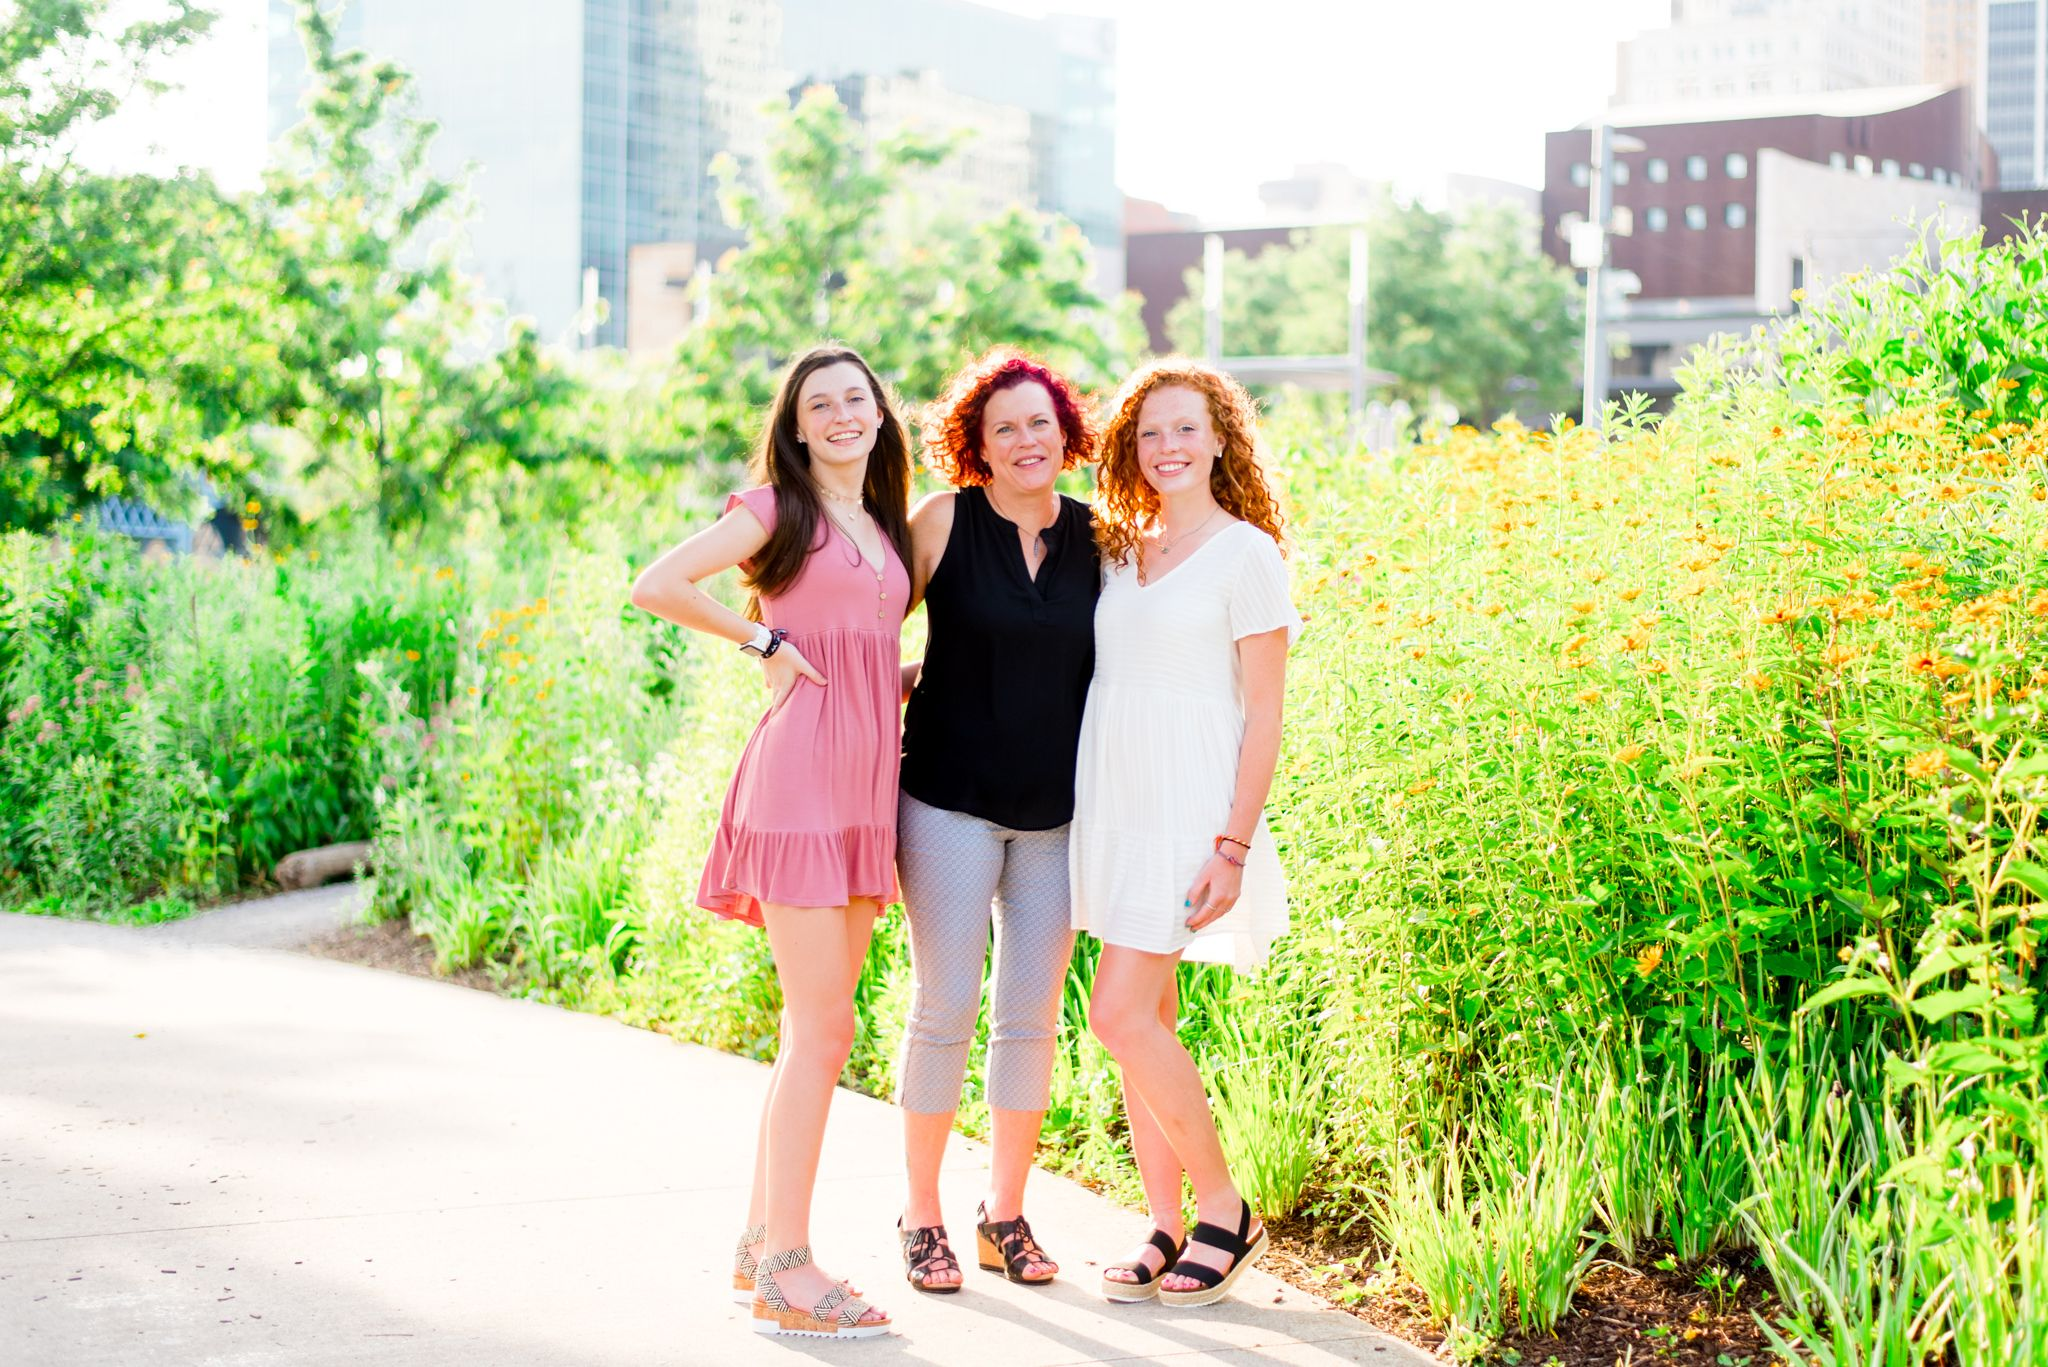 mom and two teenage daughters smiling in Smale Park in front of flowers and buildings